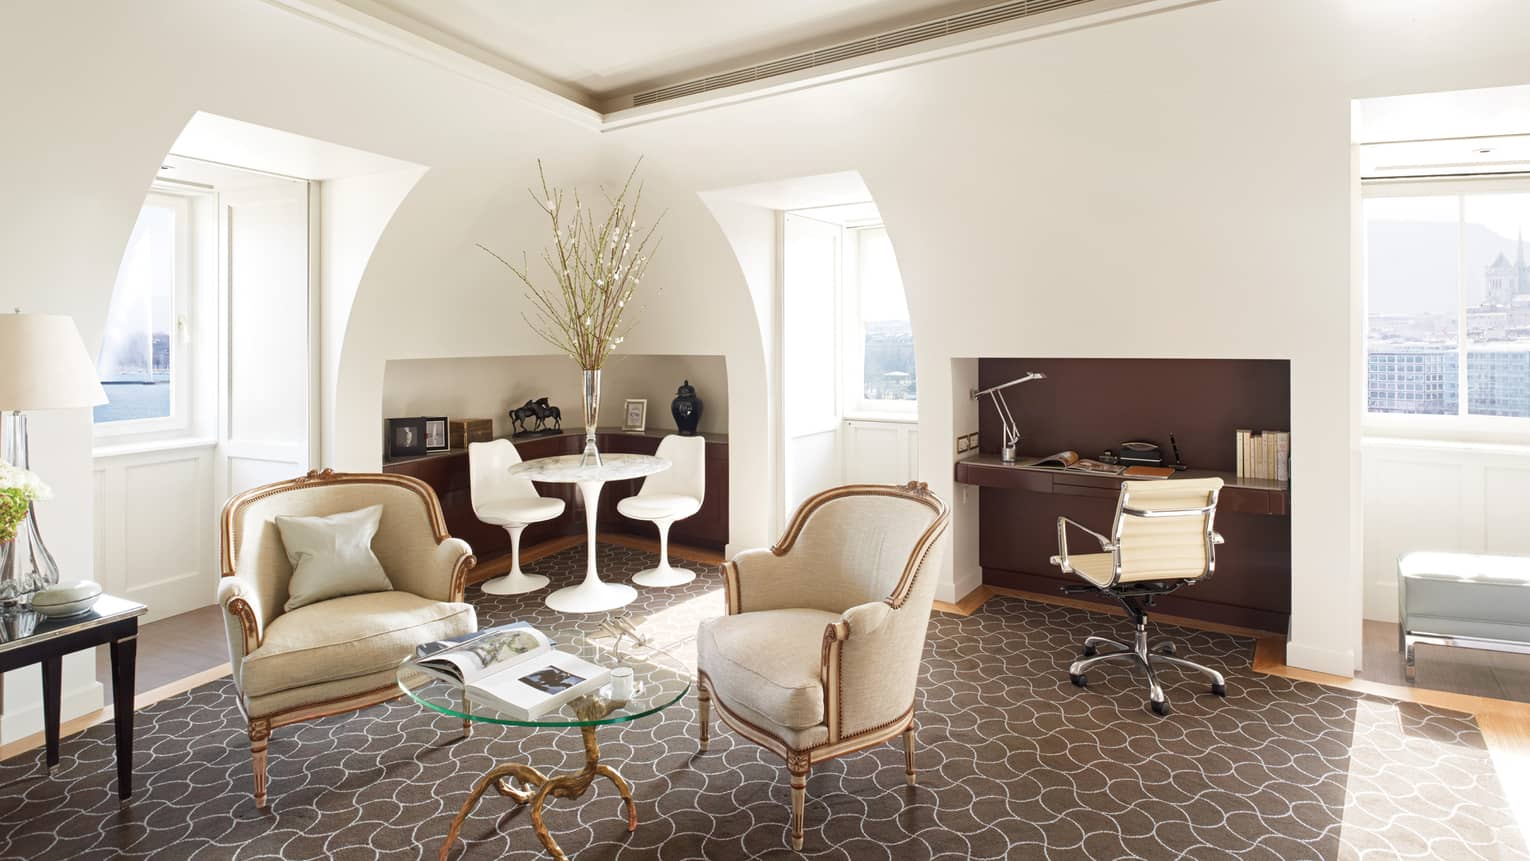 Bright Executive Loft Suite with sloped white ceilings, recessed windows, cream armchairs, modern white cafe table